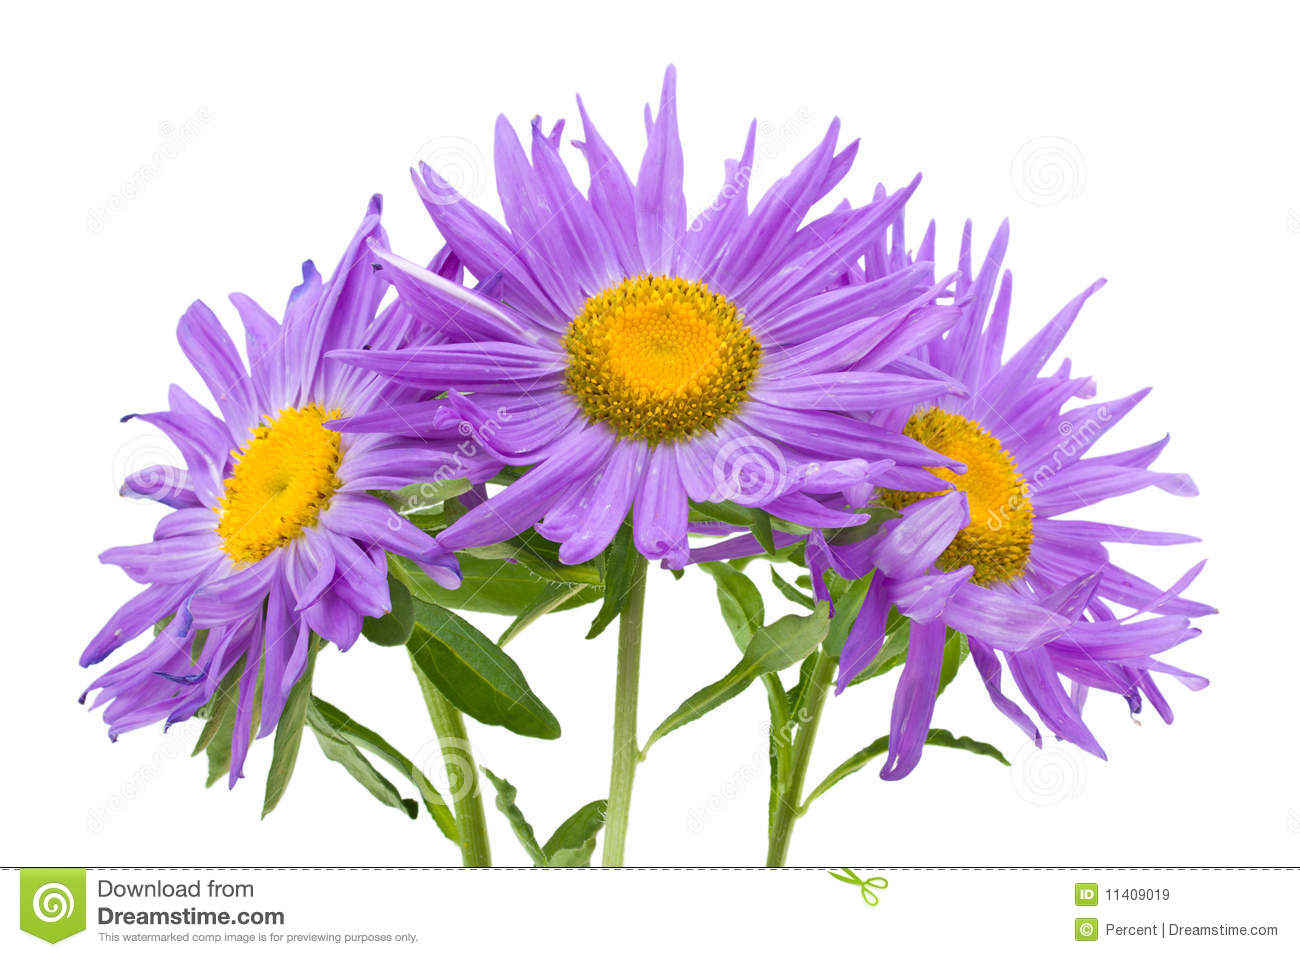 Violet aster isolated stock photo. Image of aster, nature